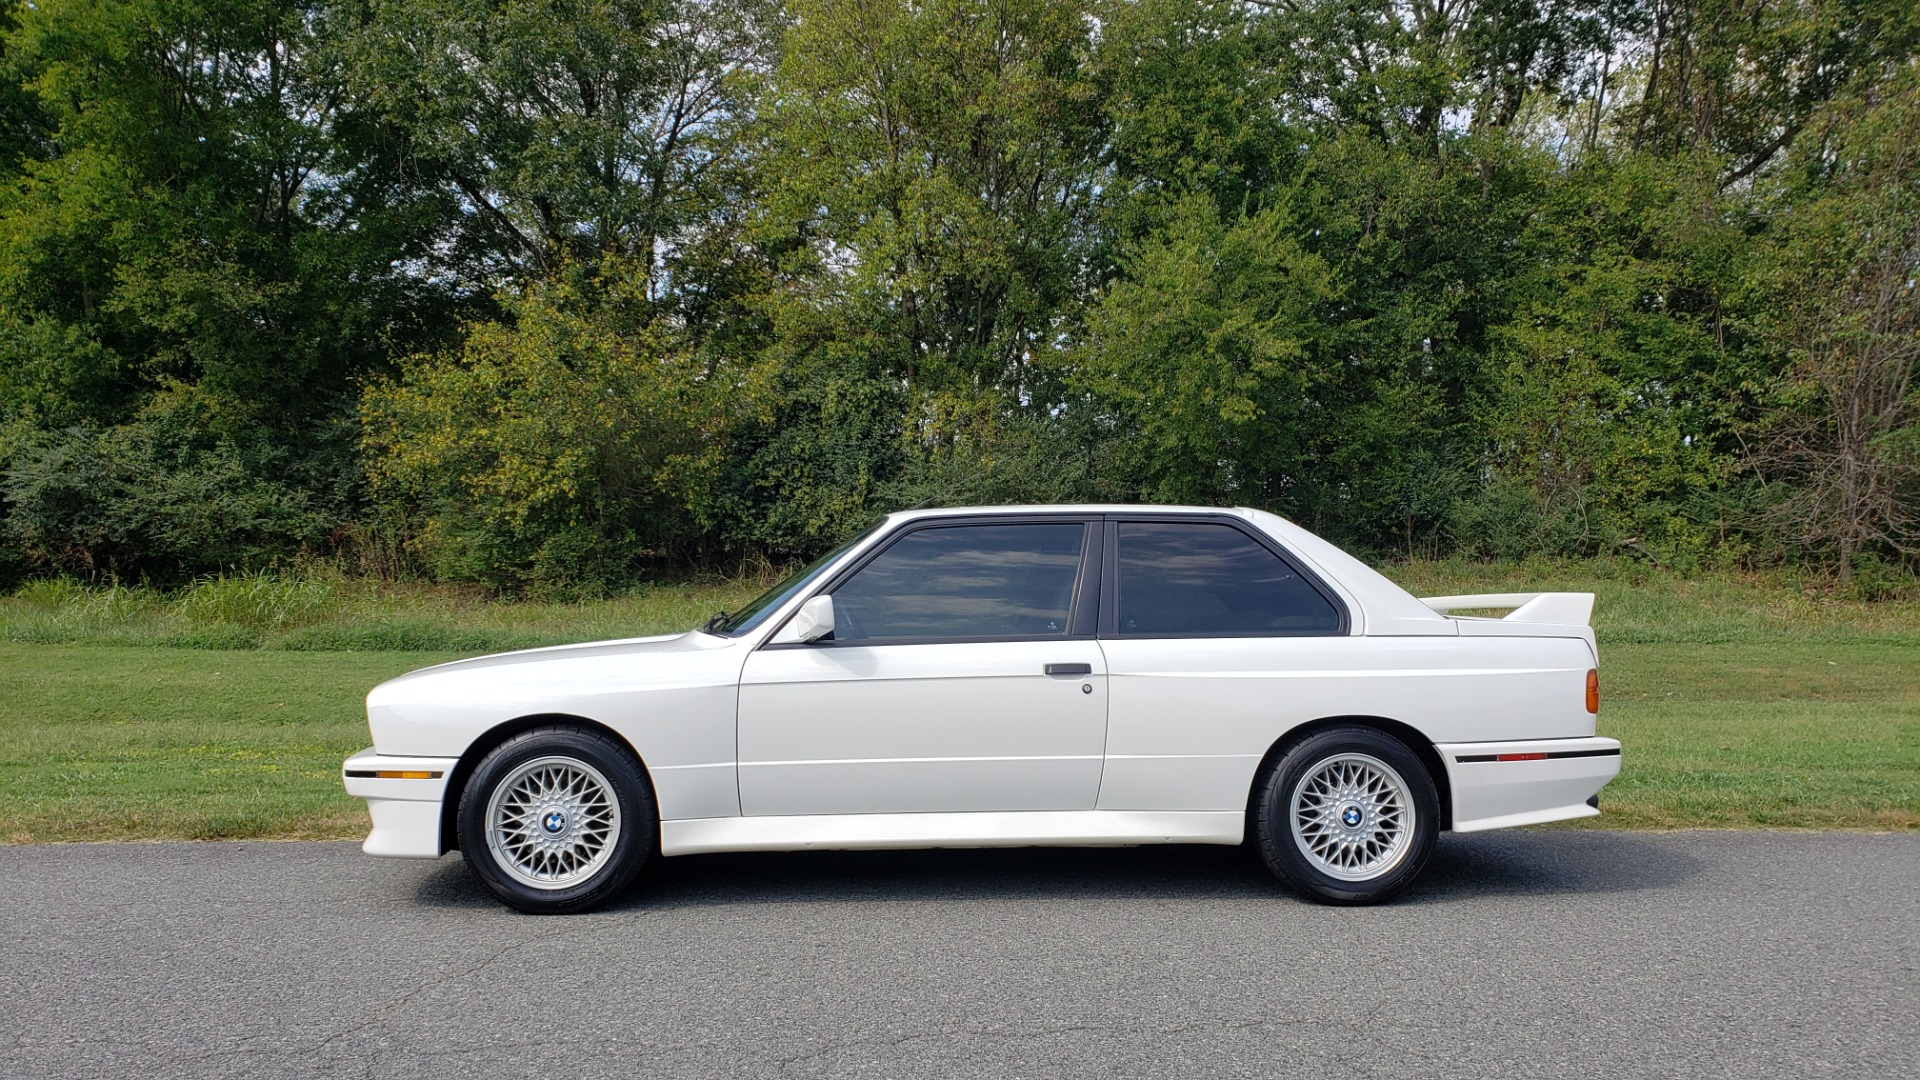 Used 1989 BMW M3 COUPE 2DR / 5-SPEED MAN / LOW MILES / SUPER CLEAN for sale Sold at Formula Imports in Charlotte NC 28227 19